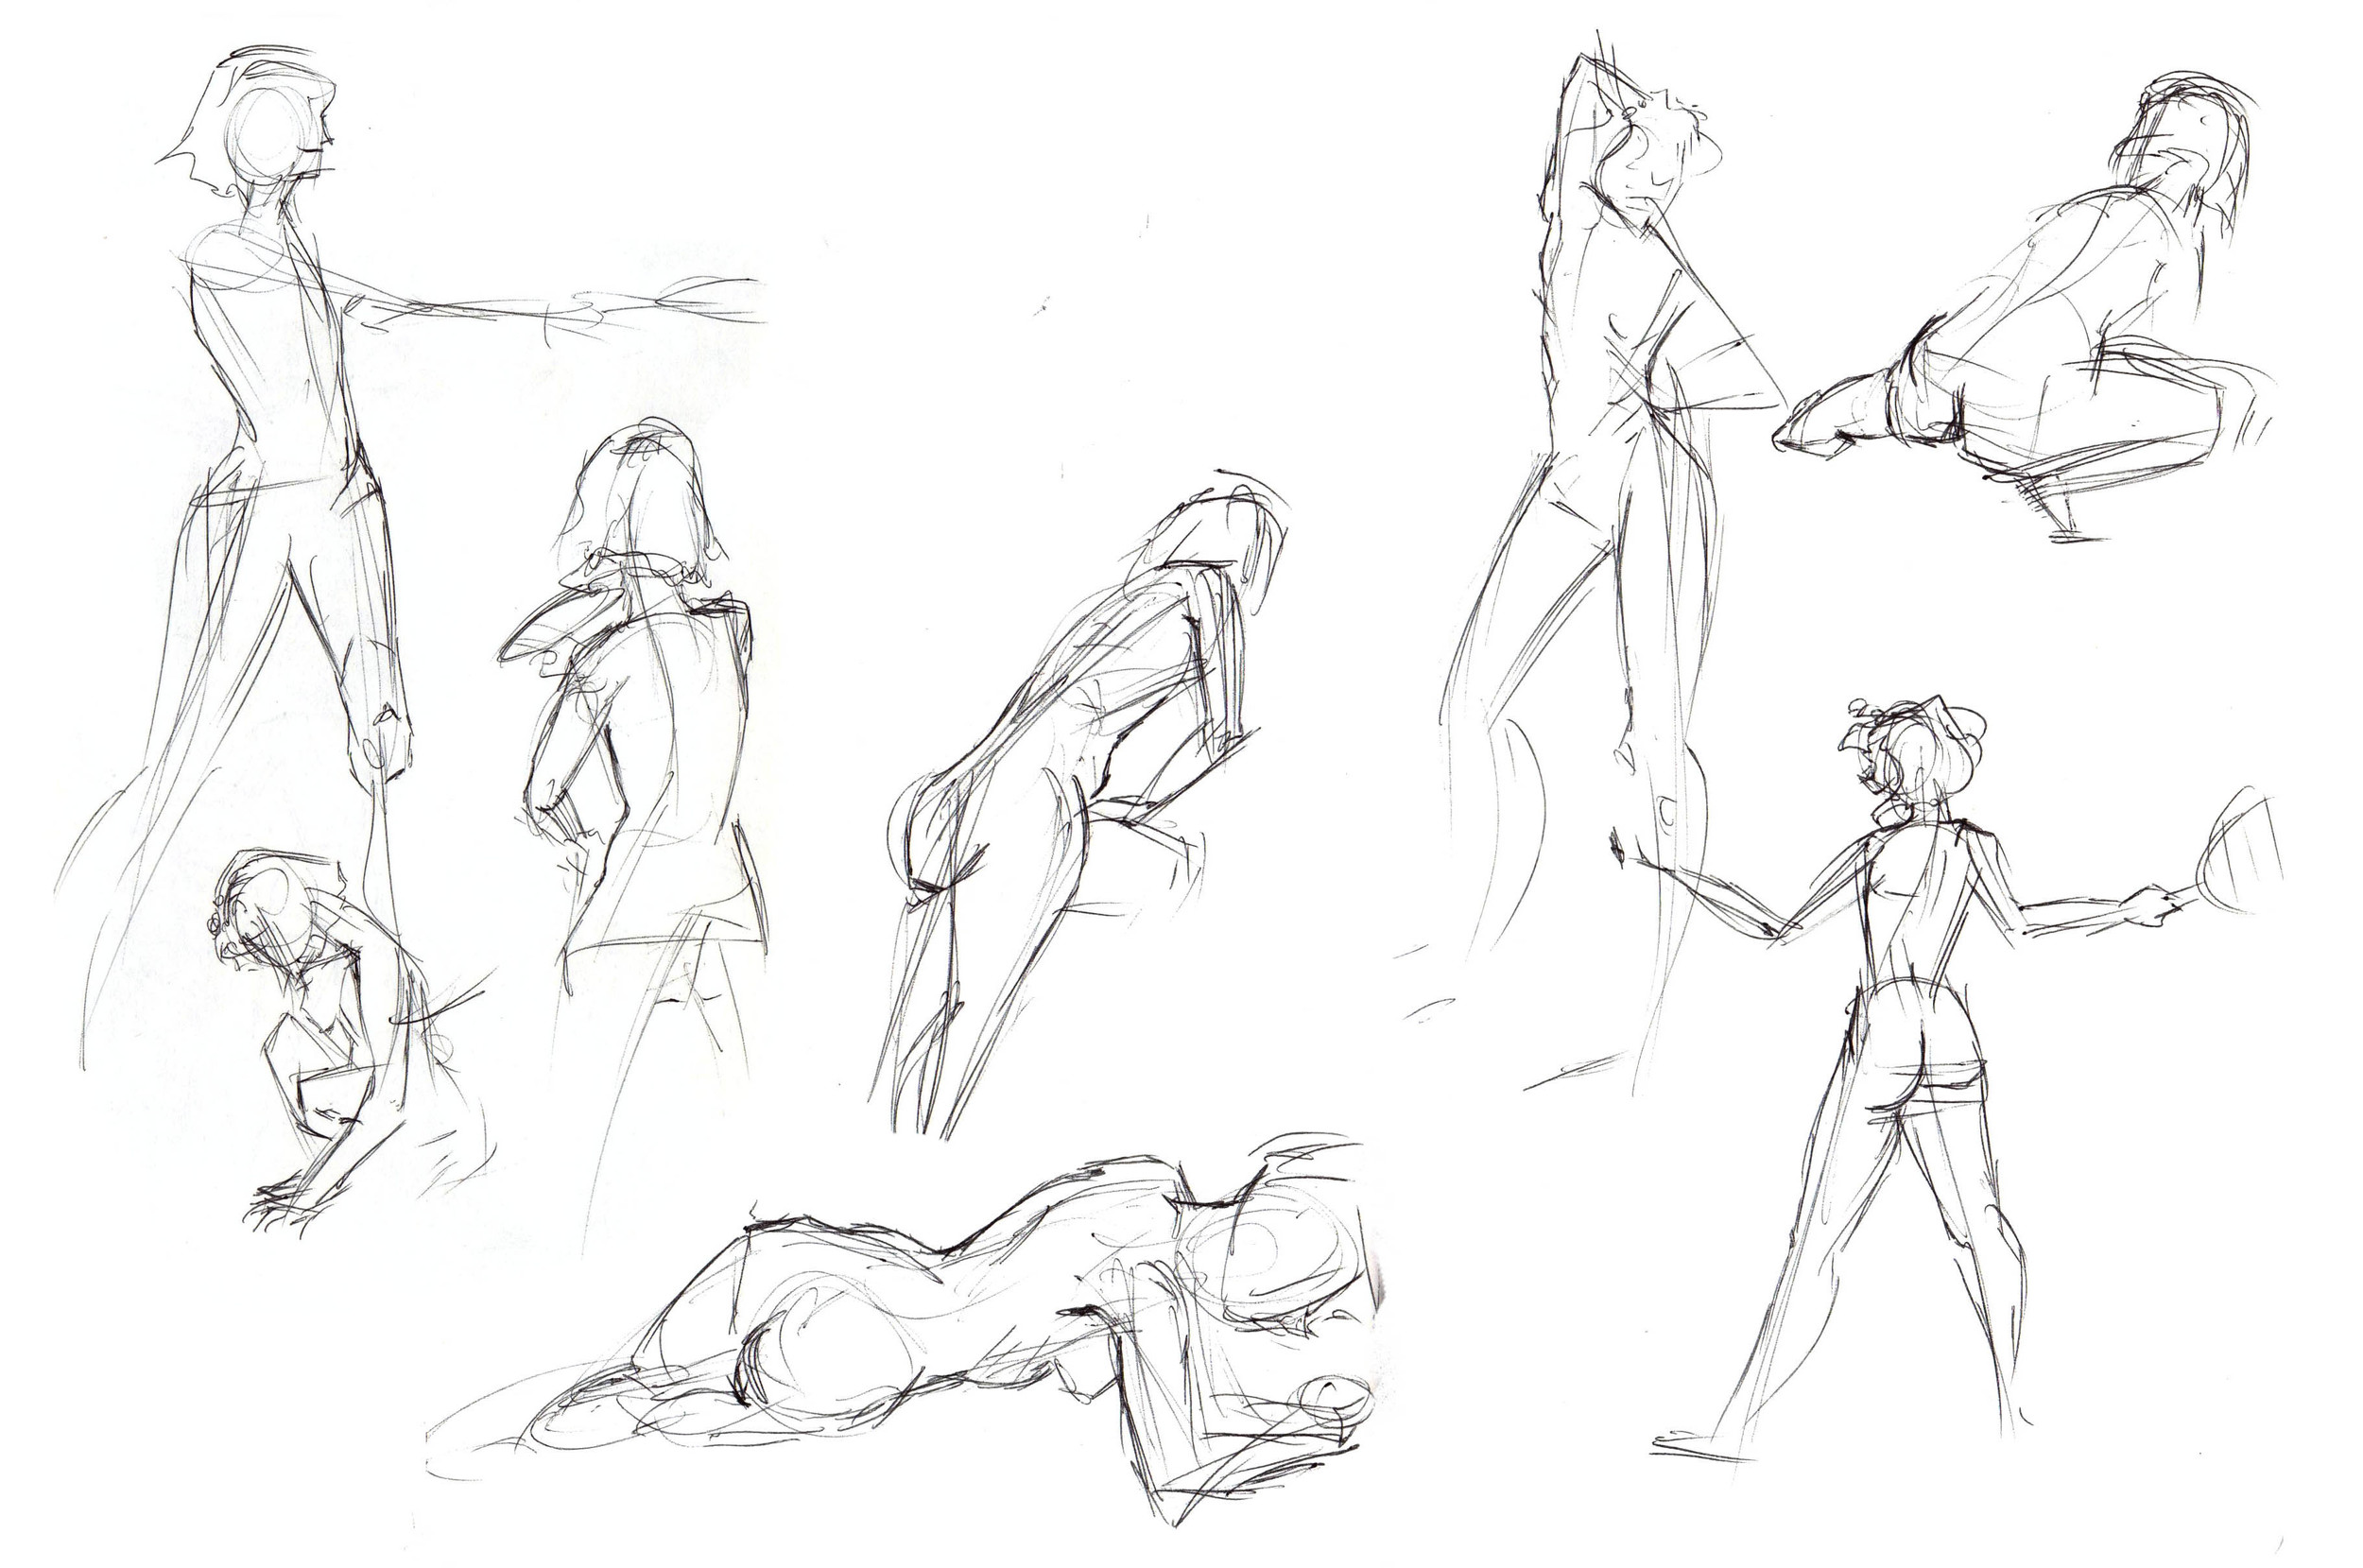 One minute poses